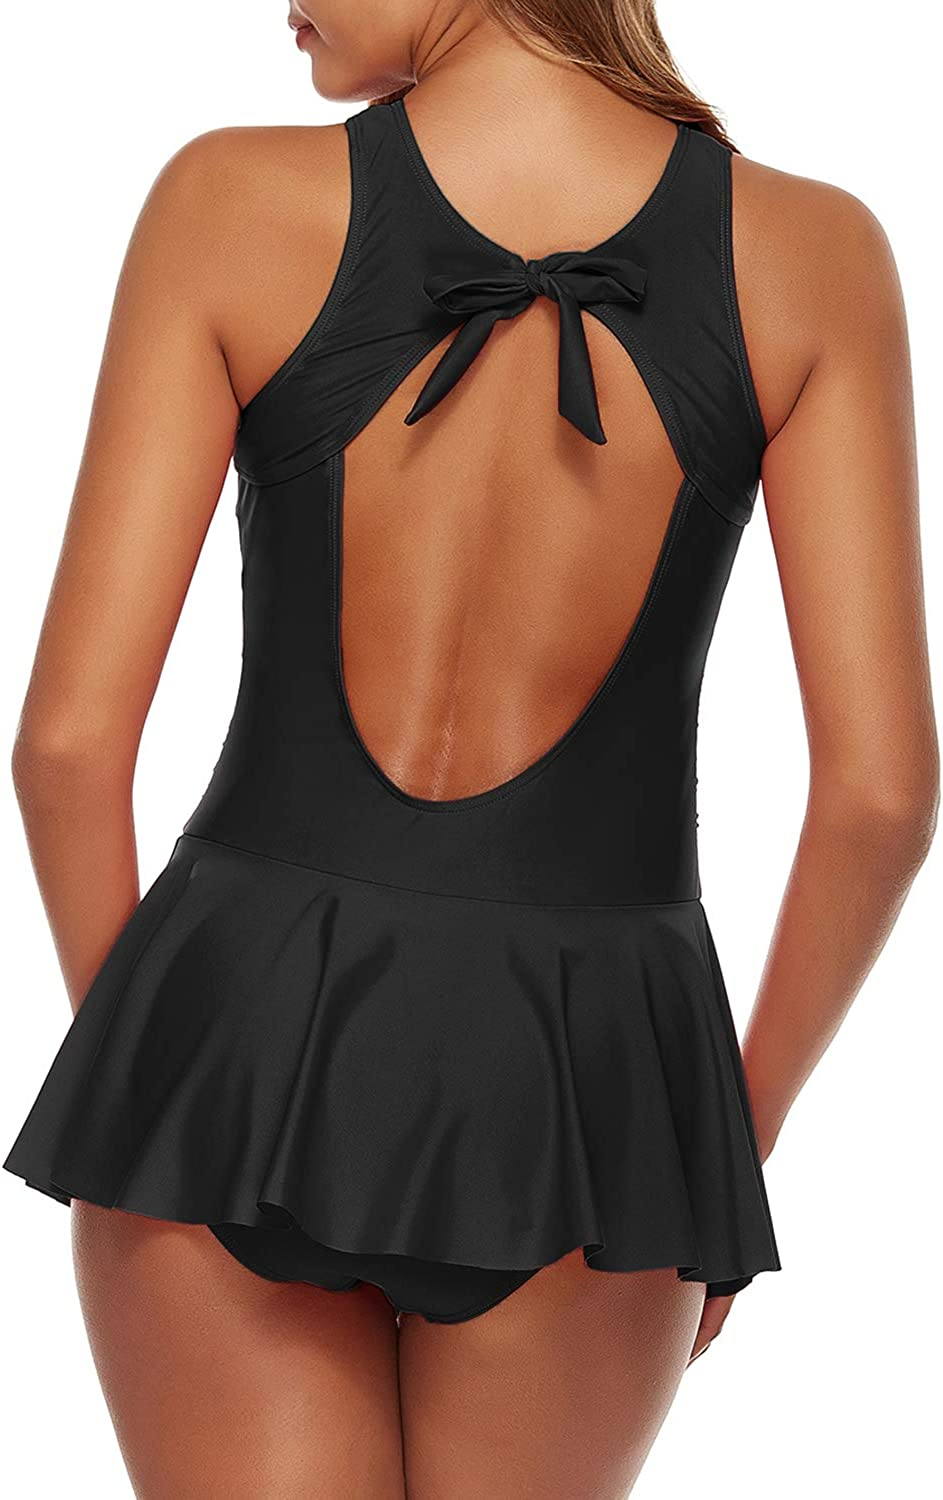 Urchics Womens Two Piece Tankini Swimdress Mesh Plunge Ruched Bathing Suit